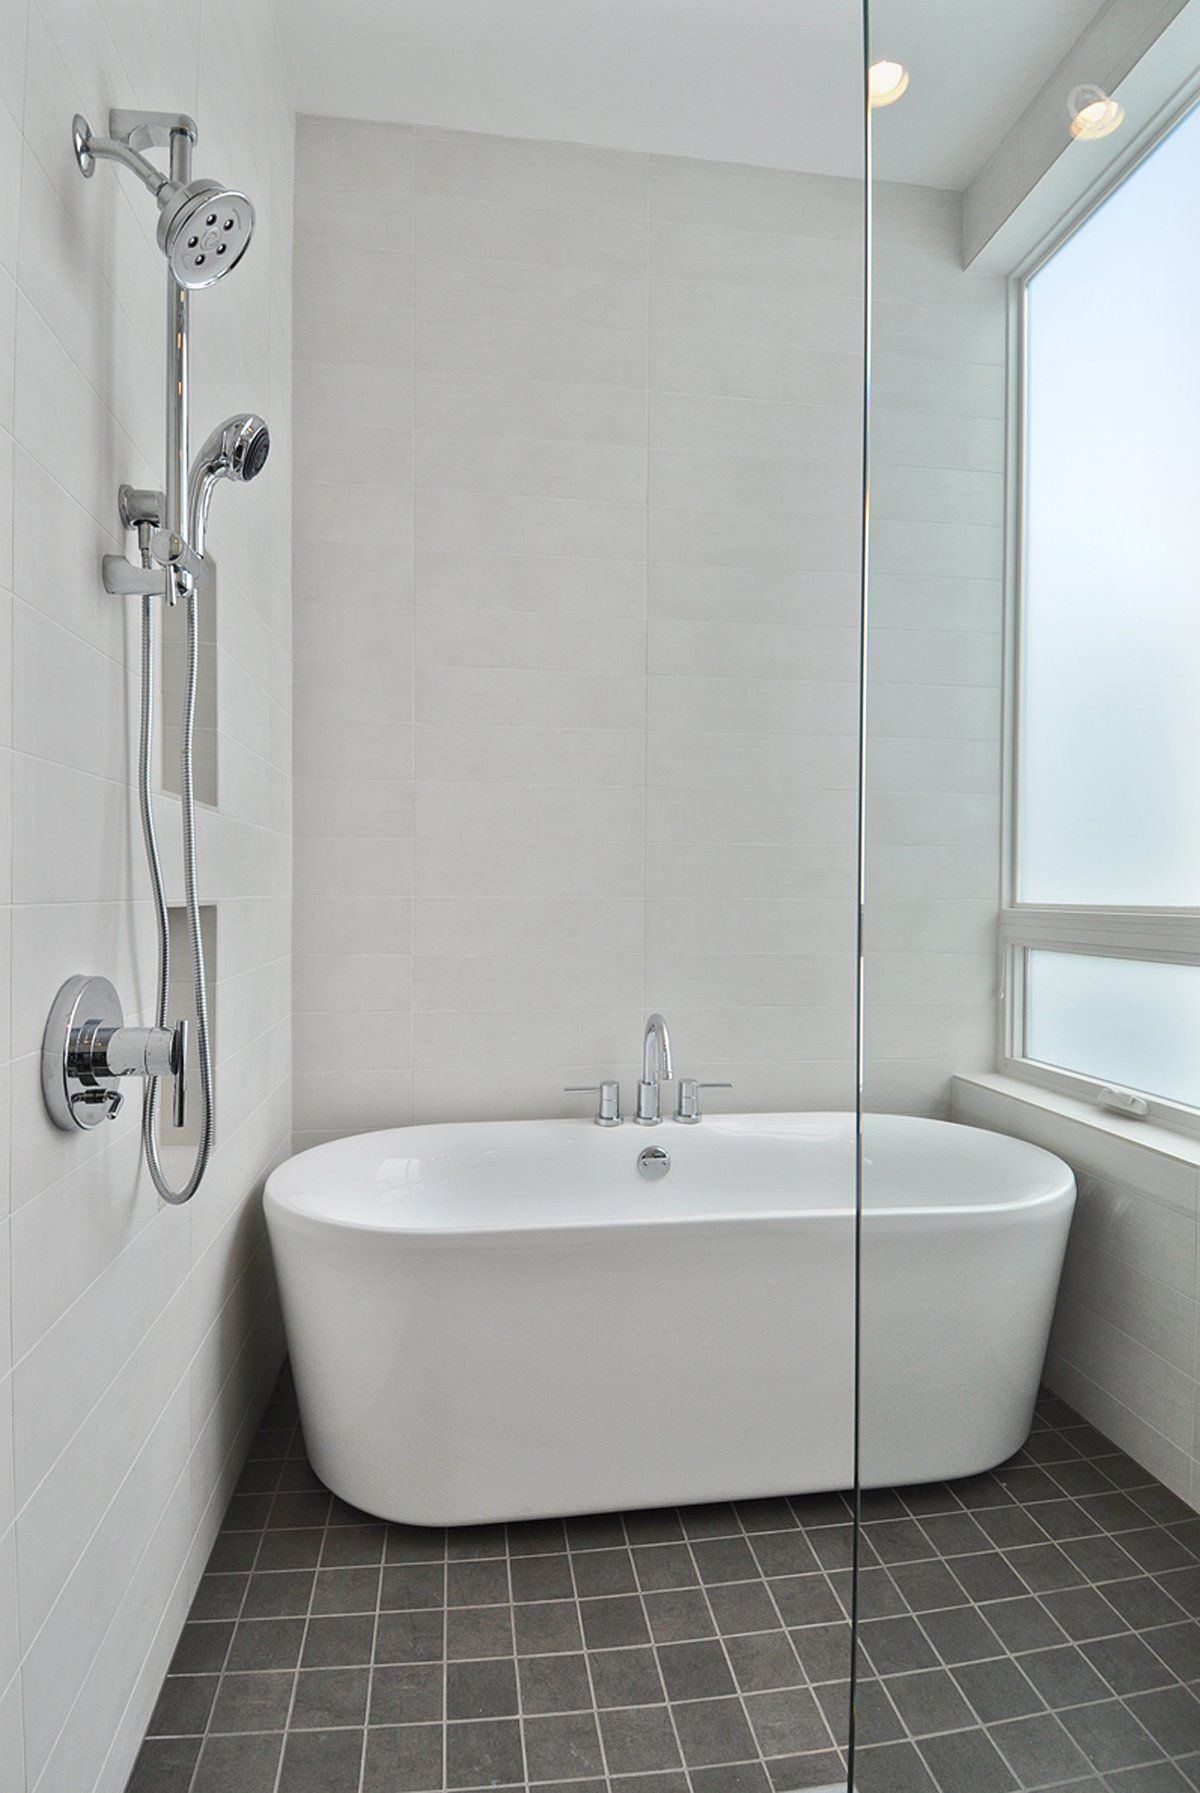 complete your charming bathroom with freestanding tubs ideas white freestanding tubs on dark floor matched - Bathroom Designs With Freestanding Tubs